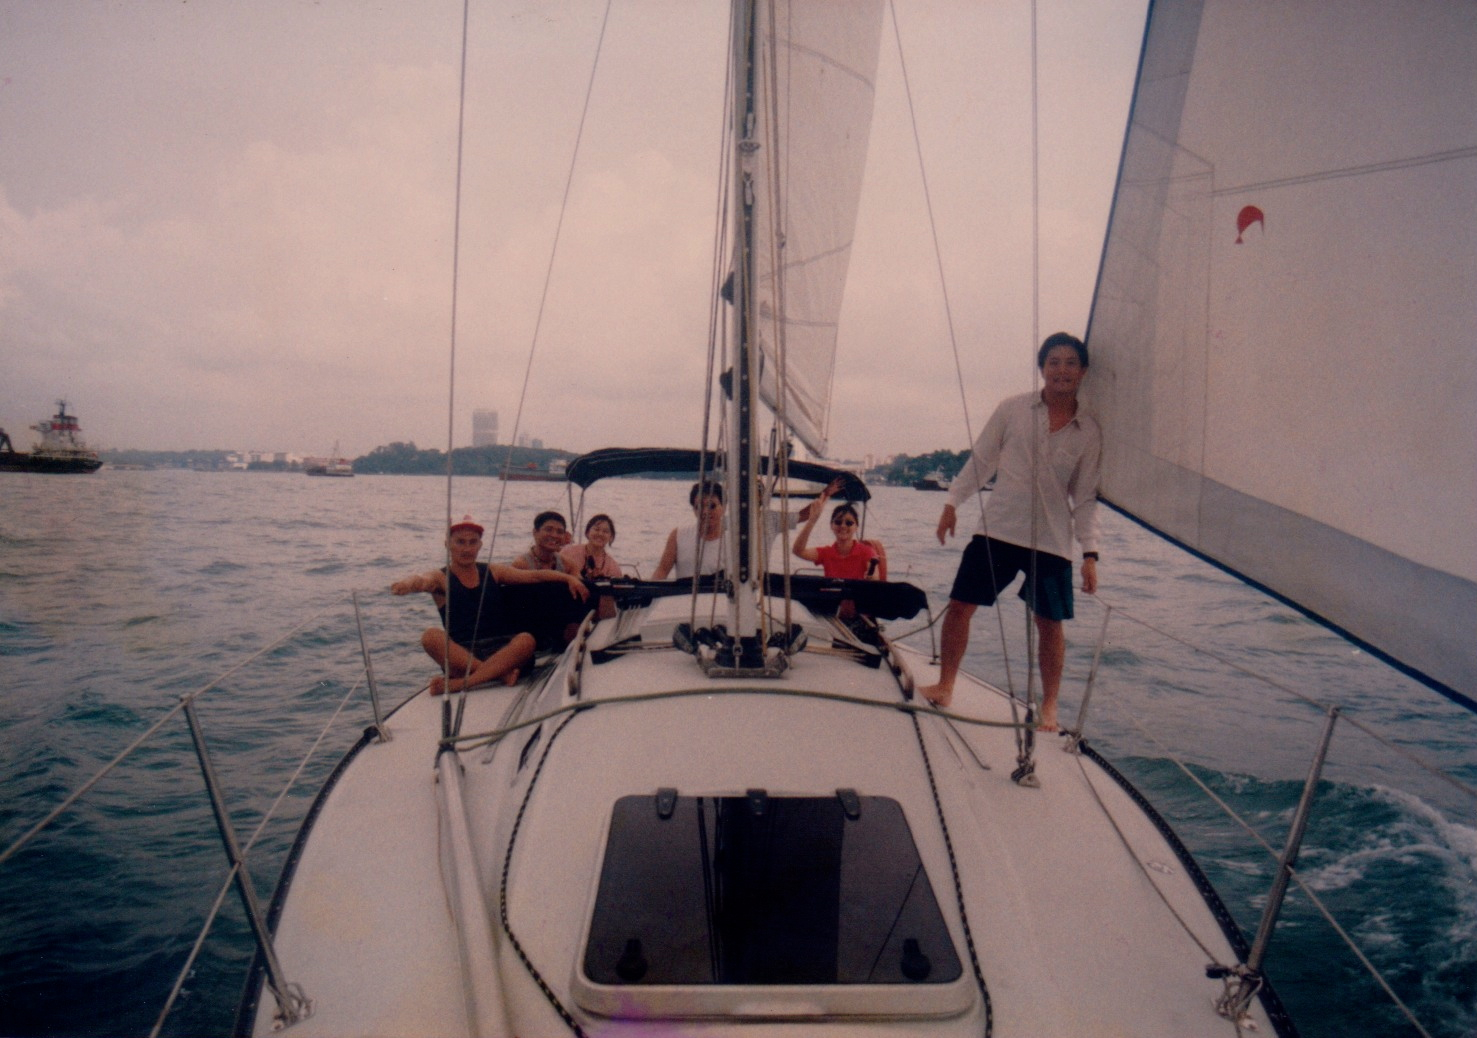 TC Wong sailing with his friends. 1997.